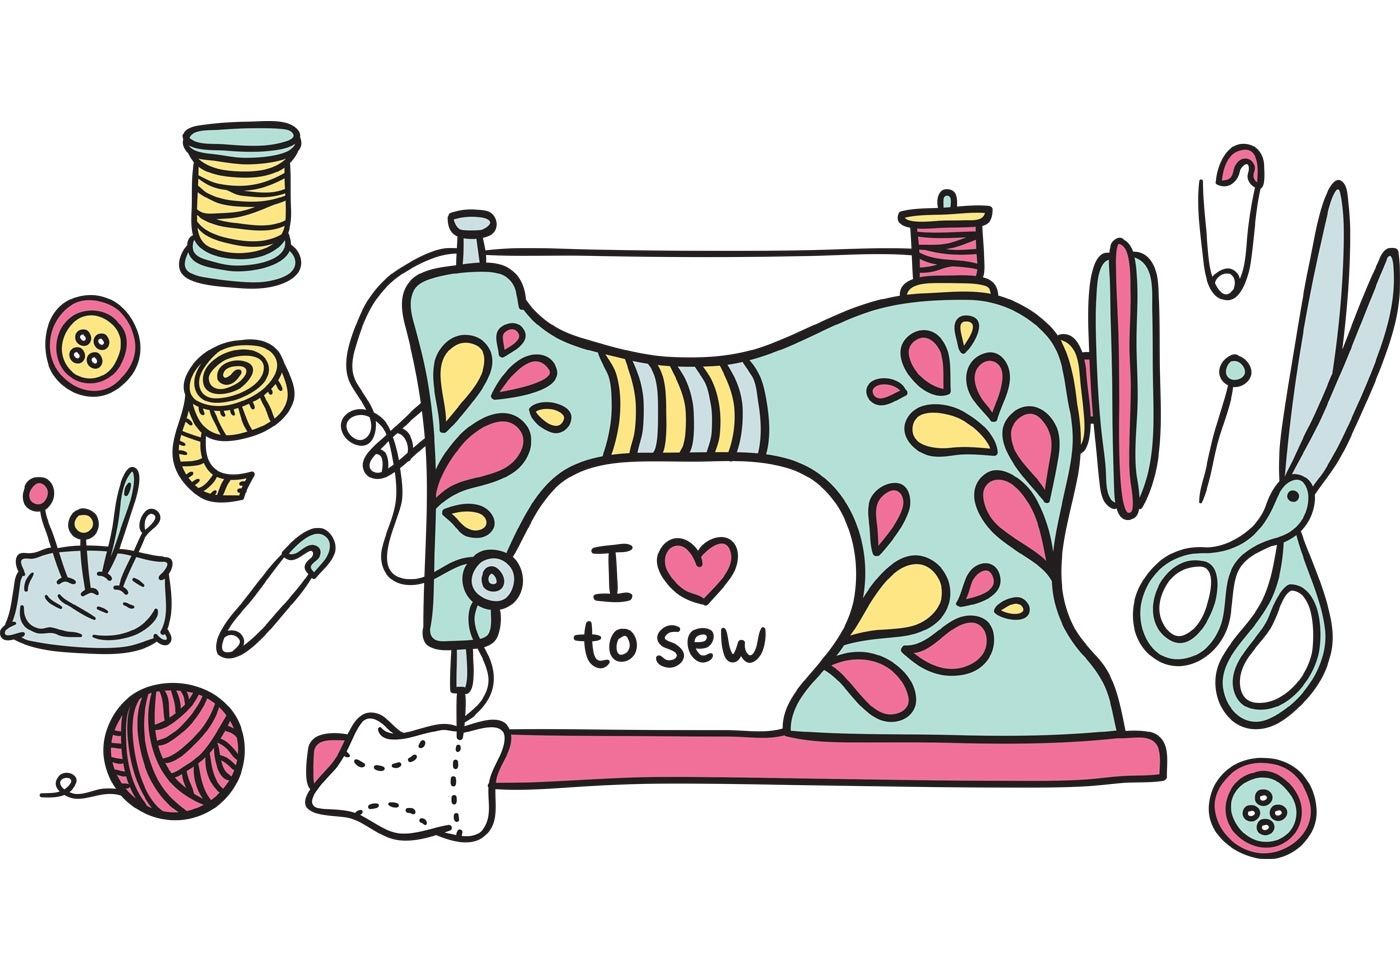 Sewinges clipart svg royalty free stock Free clipart sewing machine - ClipartAndScrap svg royalty free stock